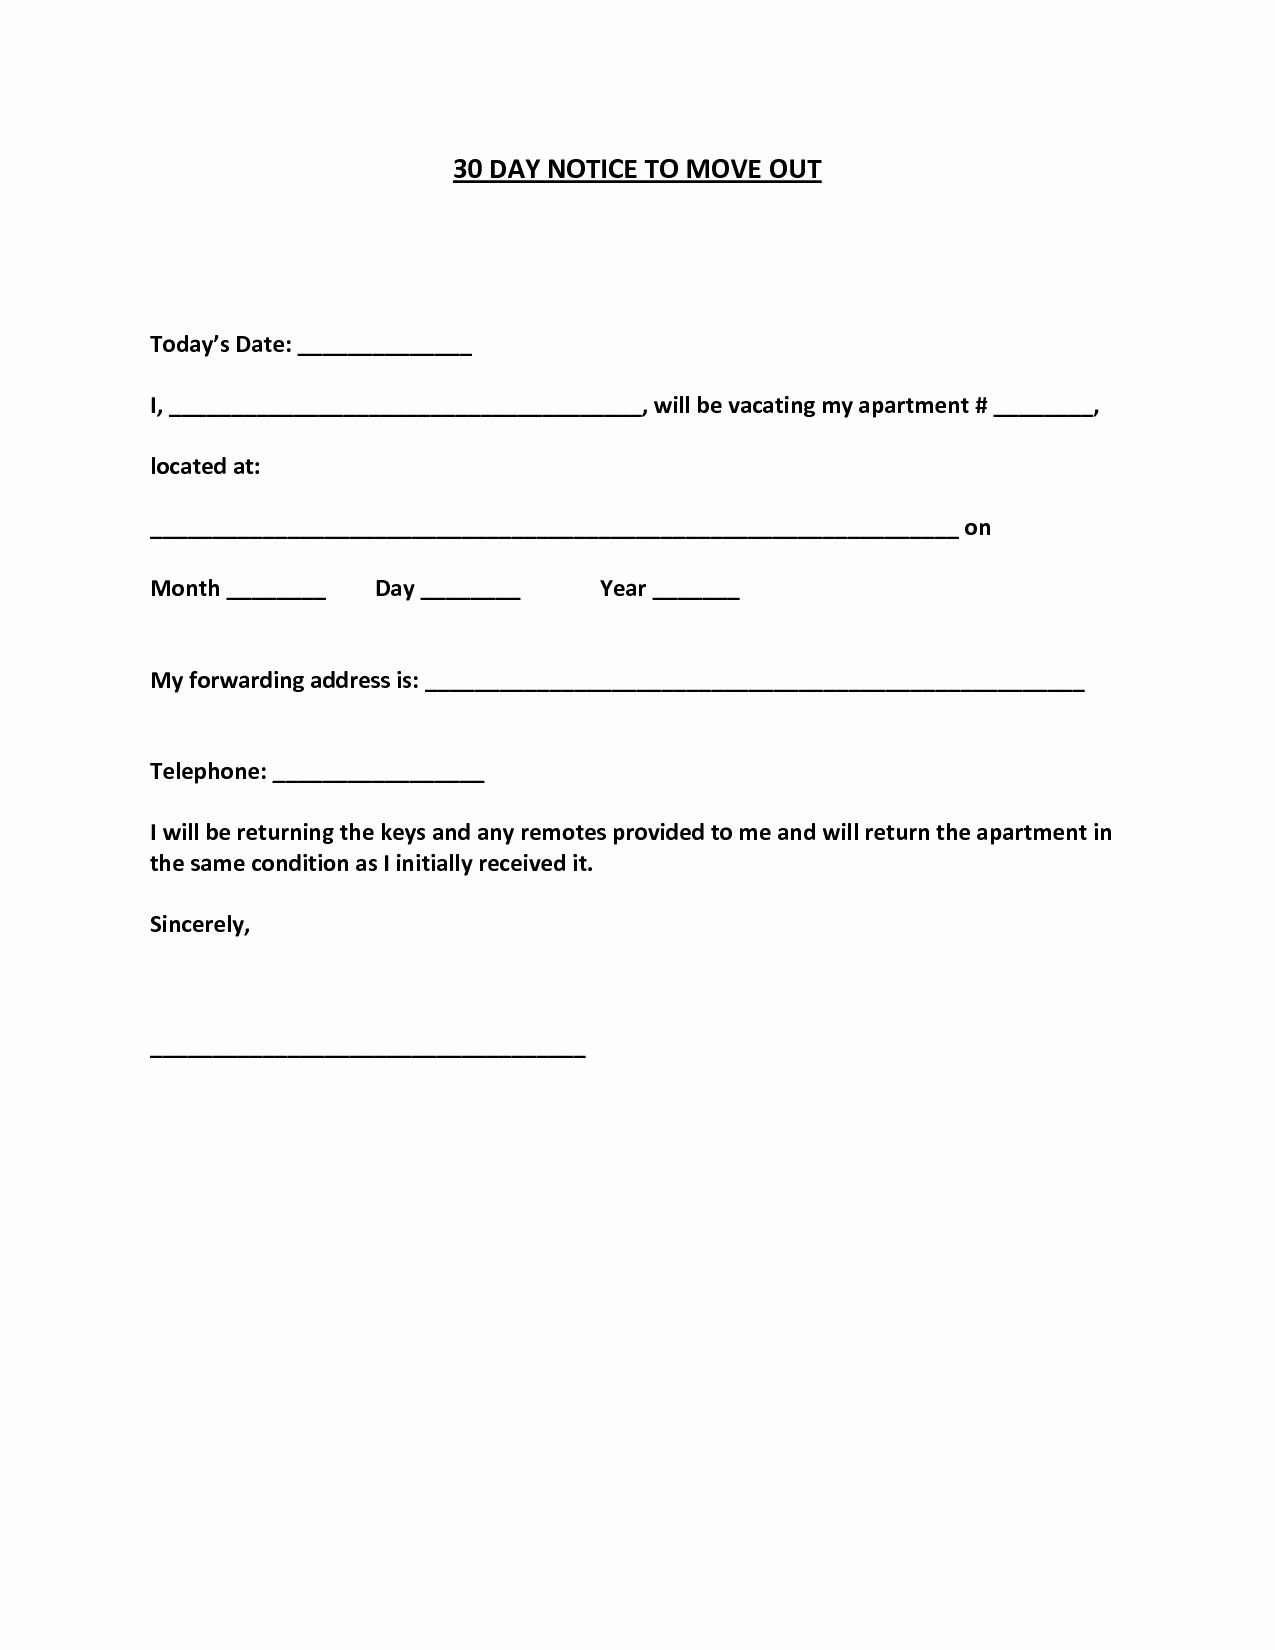 Notice to Move Out Letter New Best S Of 30 Day Notice Template 30 Day Notice